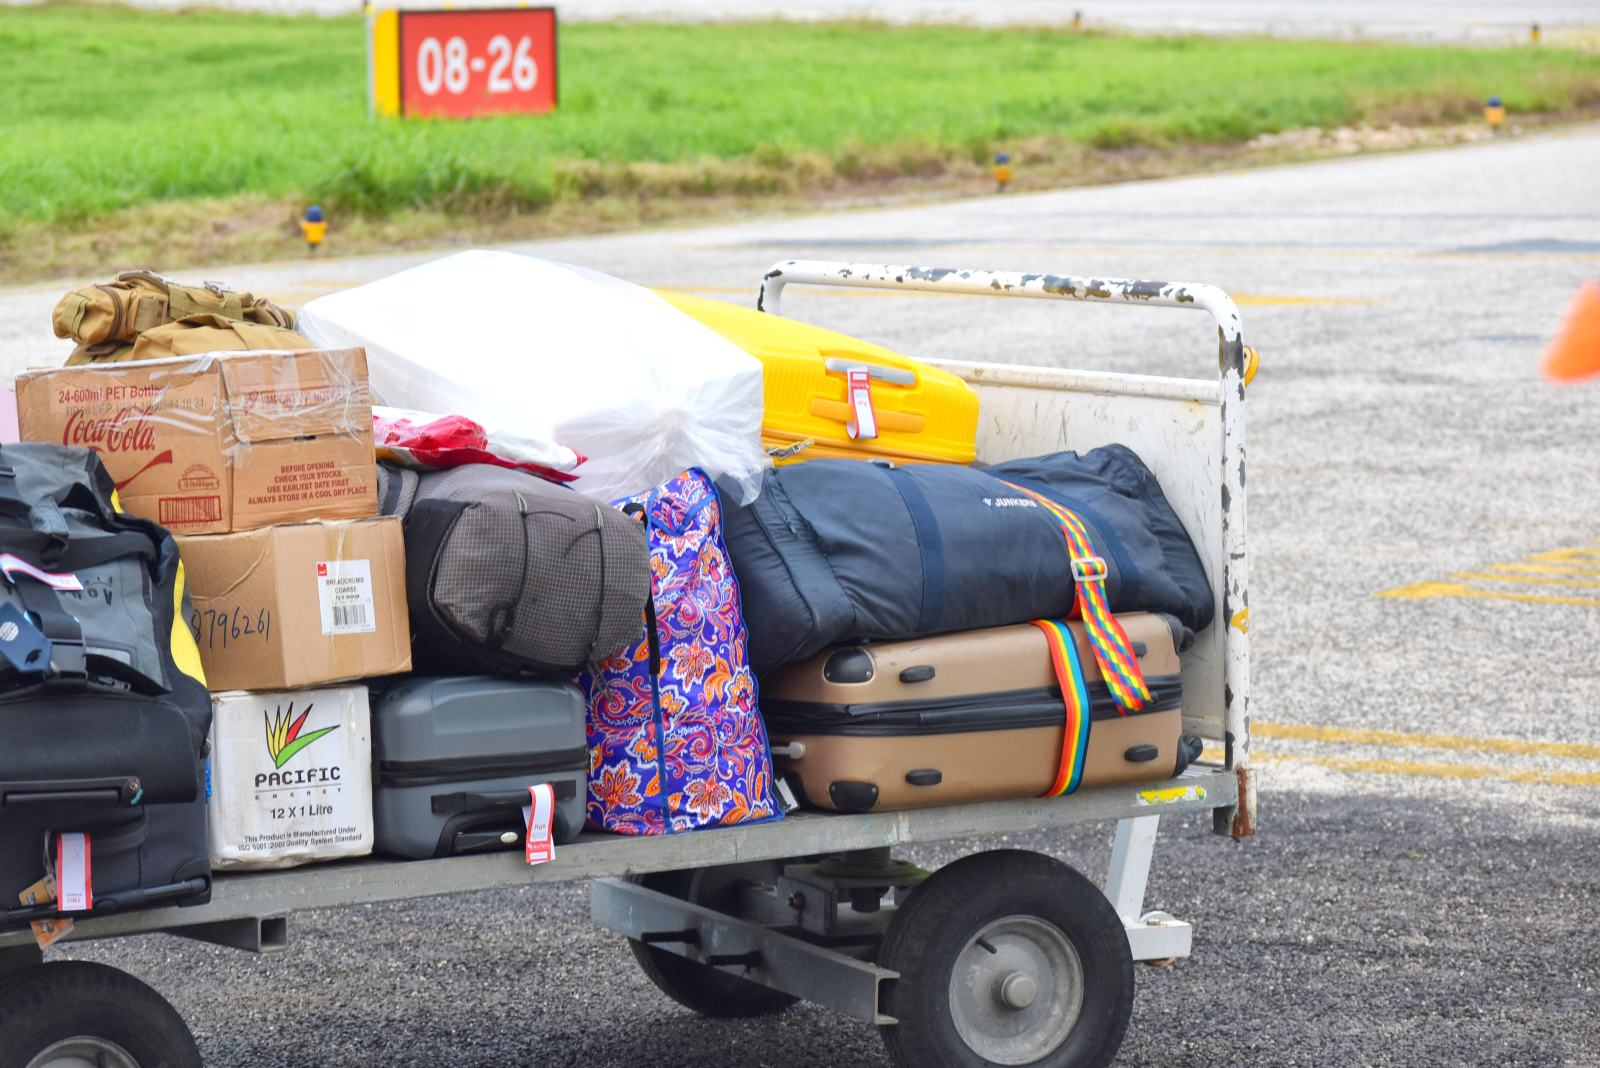 What is the Best Type of Luggage for Tonga?